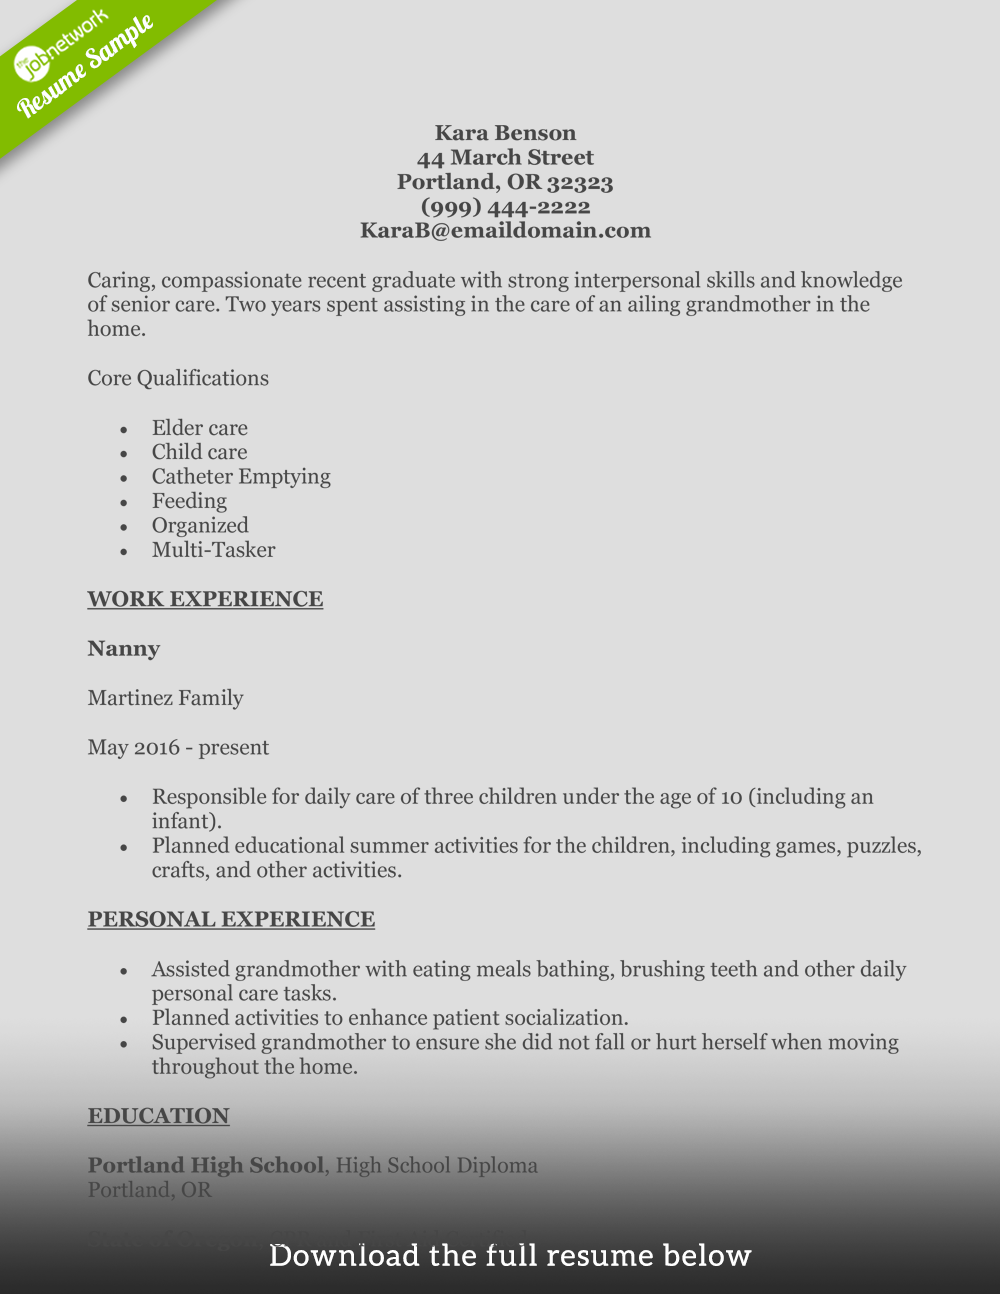 Home Health Aide Resume Entry Level  Nurse Aide Resume Examples